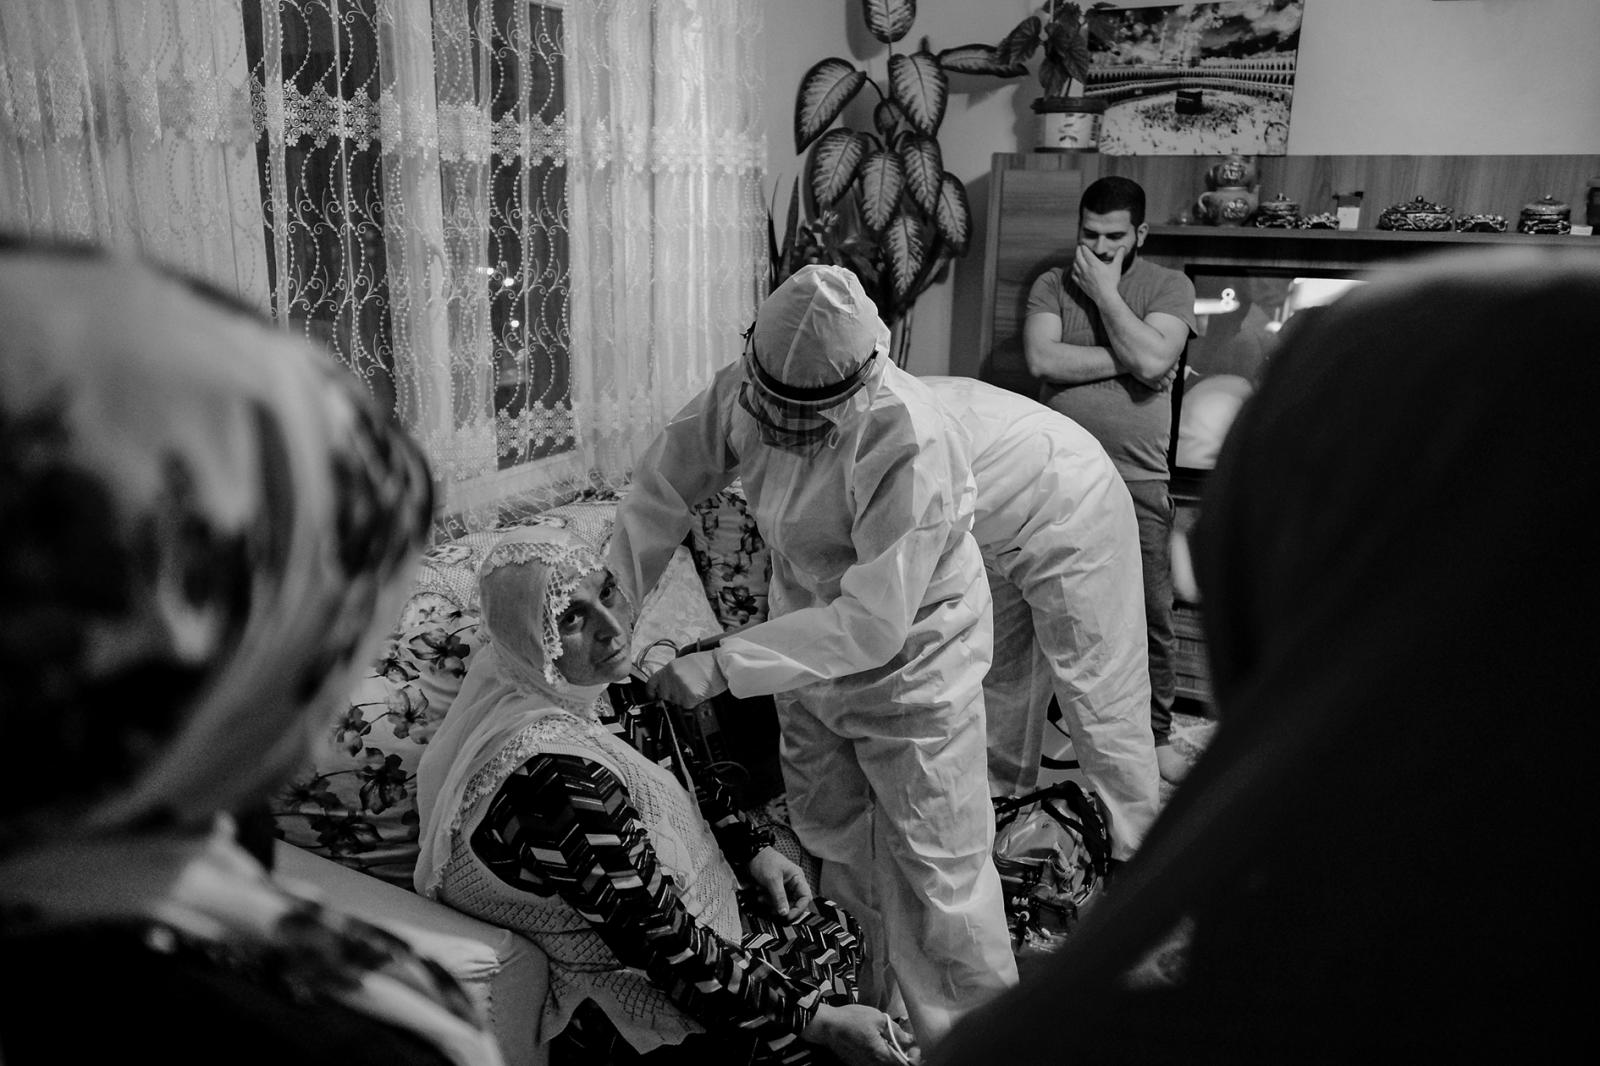 ISTANBUL, TURKEY, MAY 11- An elderly woman seeking help from 112 healthcare teams with suspicion of coronavirus is being treated at her home in Esenyurt, Istanbul. The relatives of the patient follow the healthcare professionals' work anxiously.